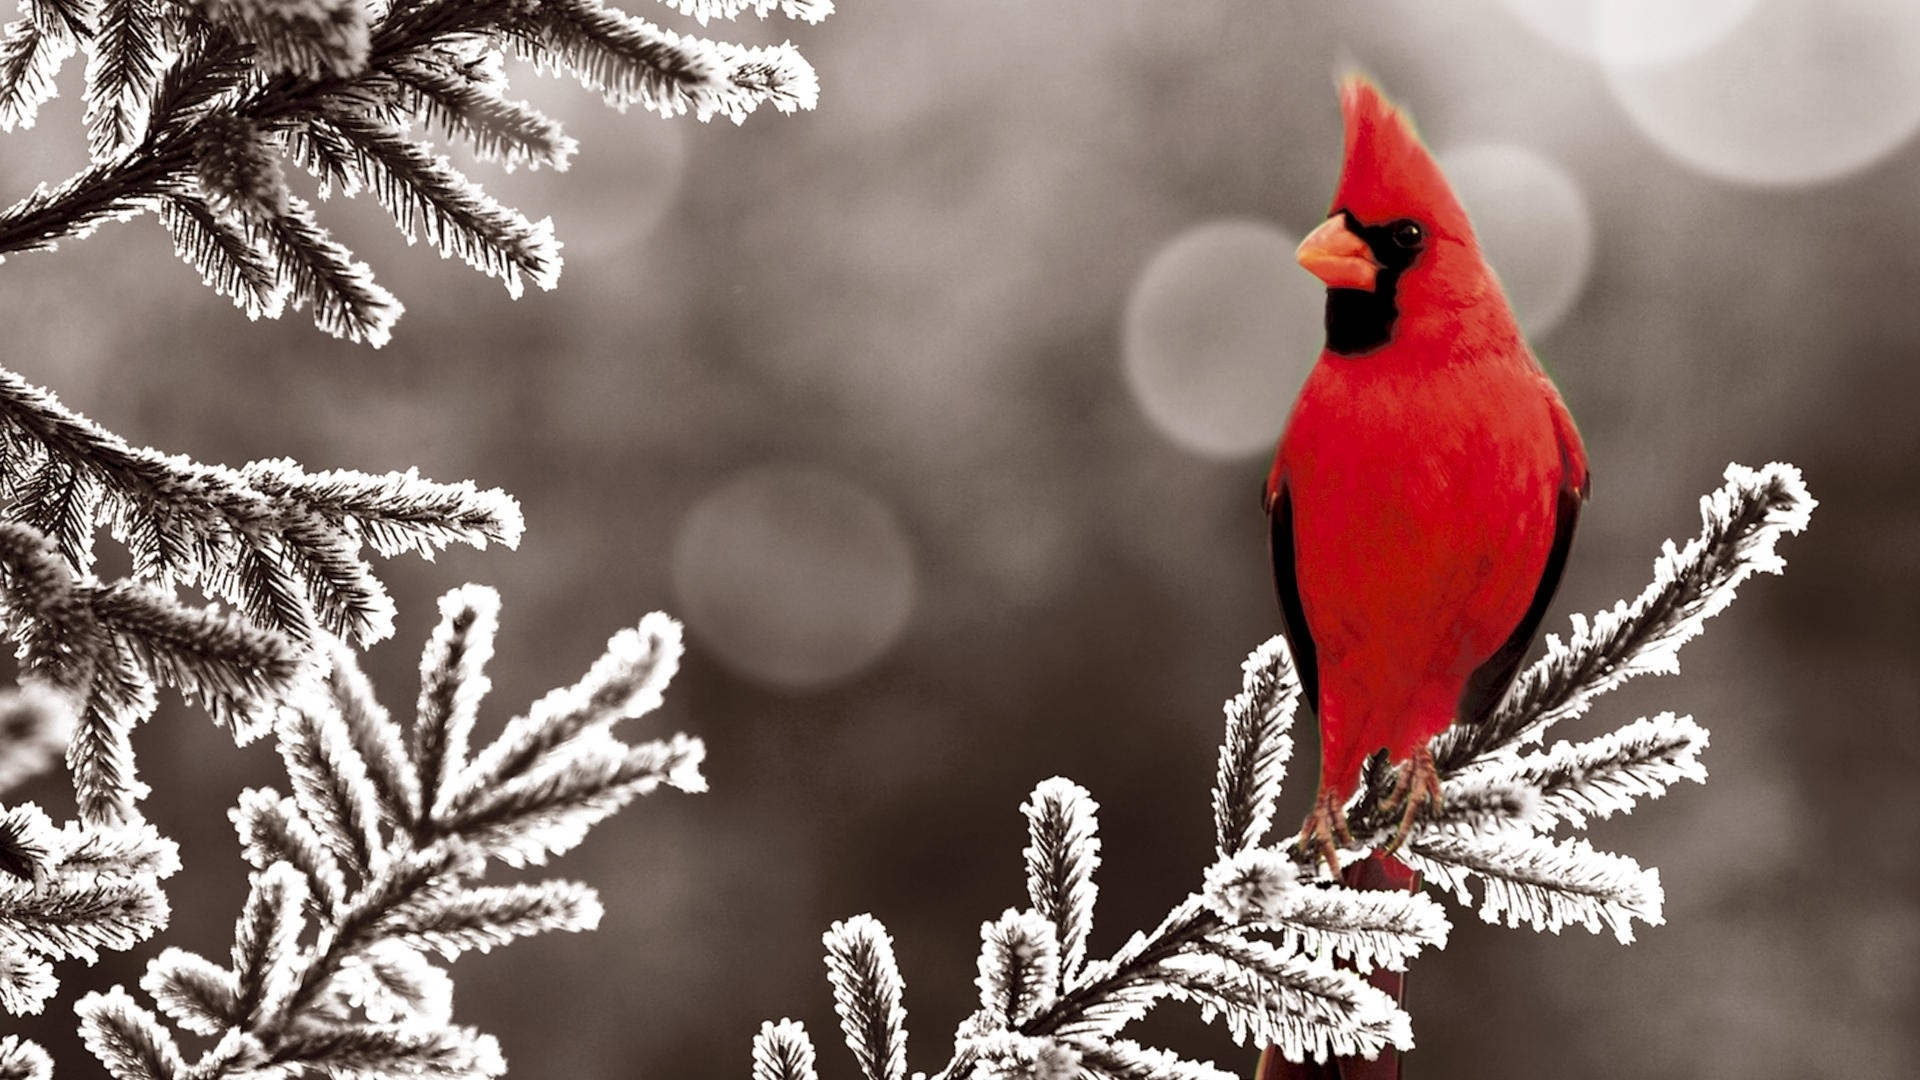 Download Wallpapers Download 1920x1080 ice winter red birds cardinal 1920x1080